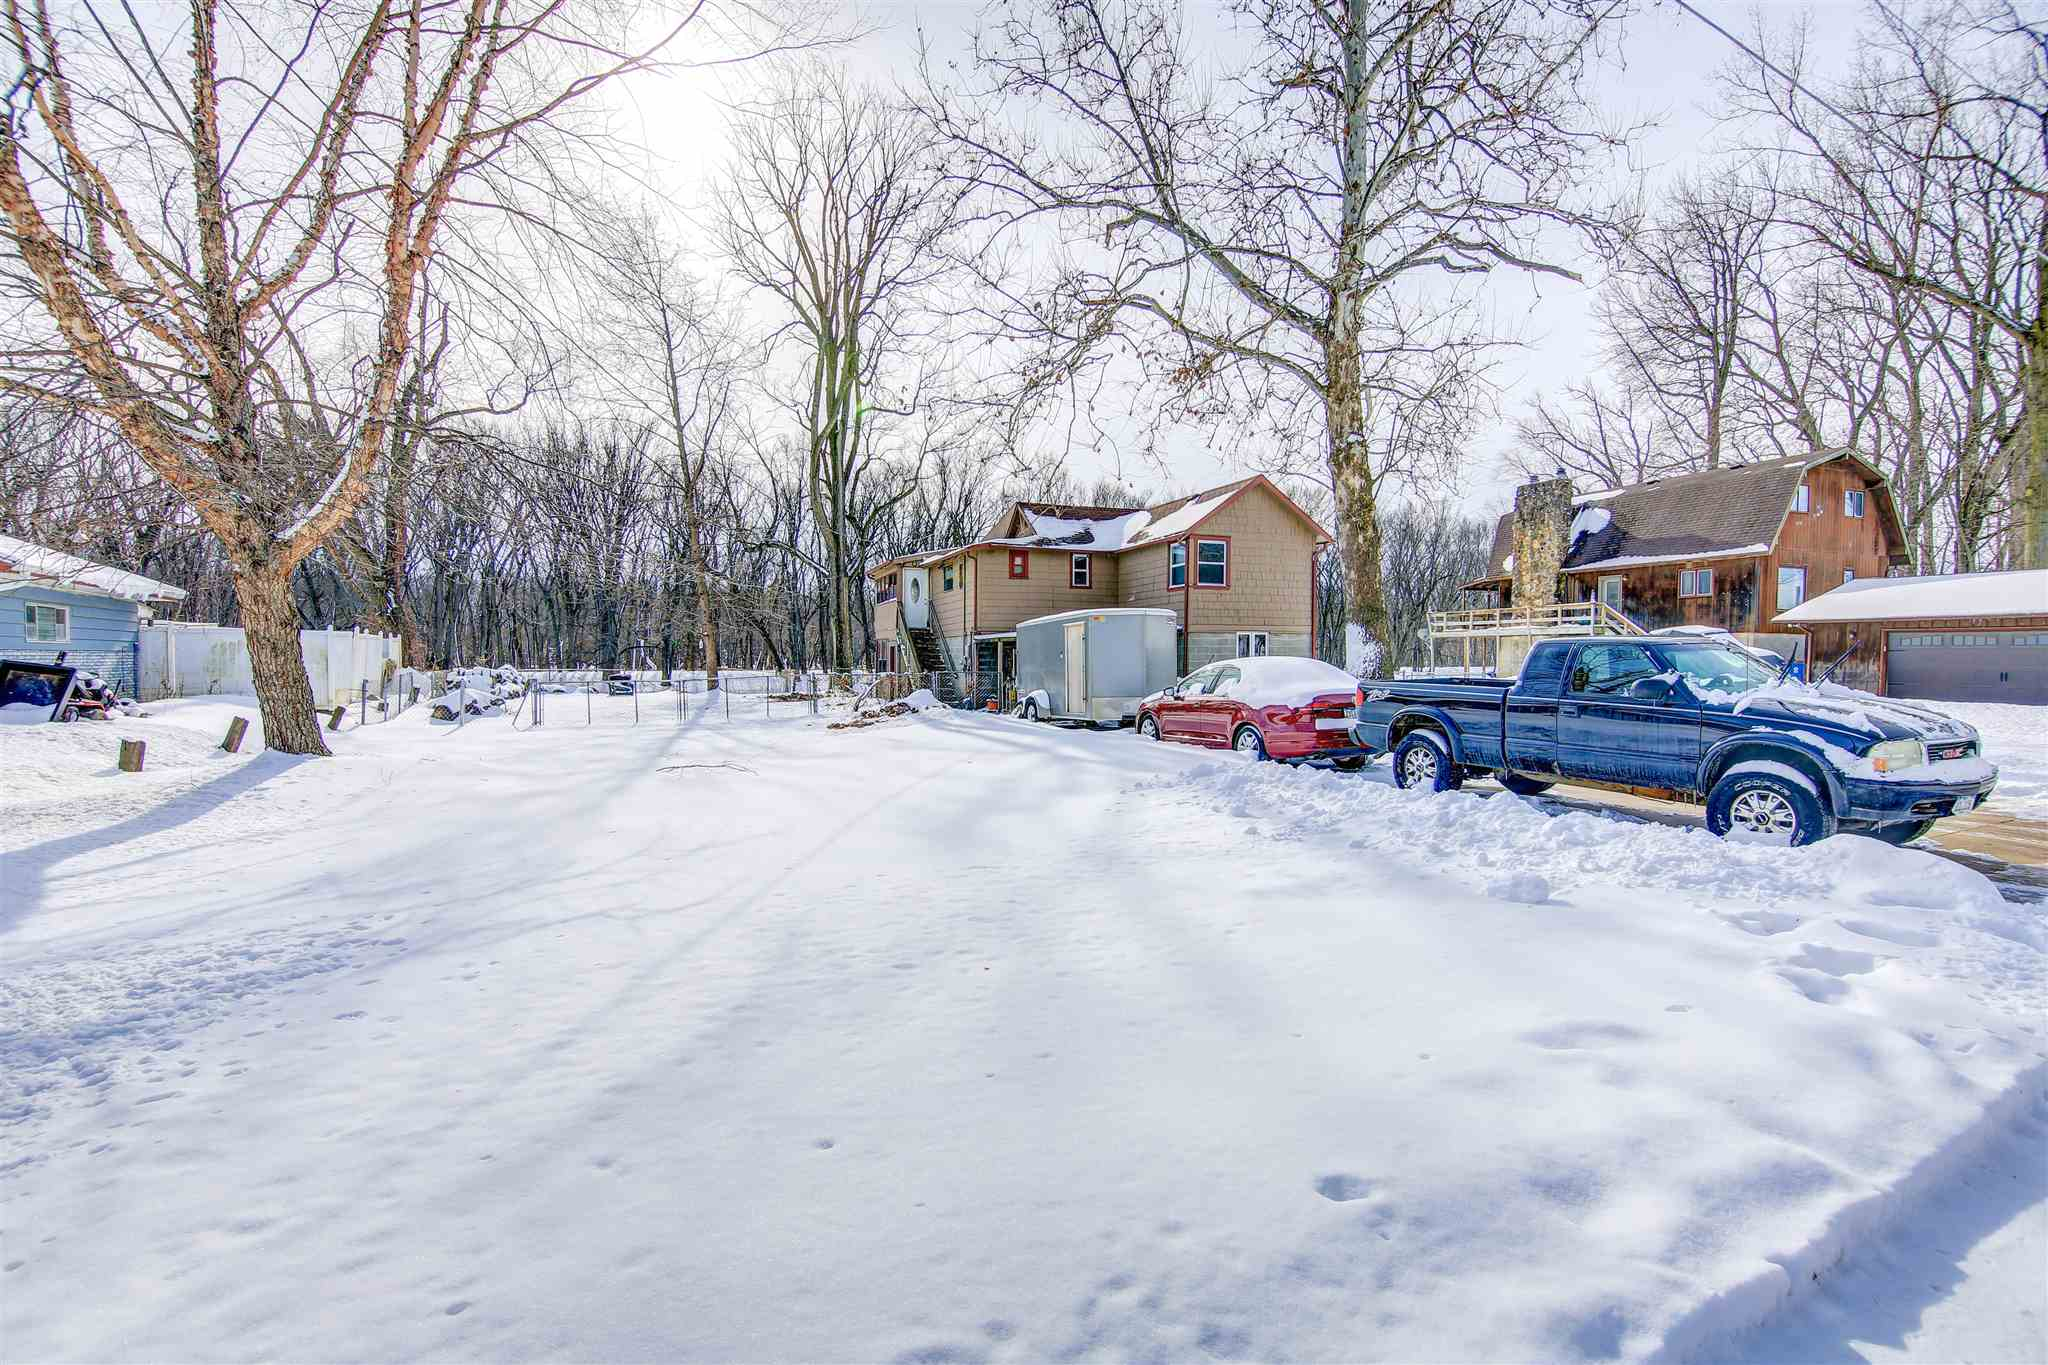 2121 SWAN Property Photo - Camanche, IA real estate listing